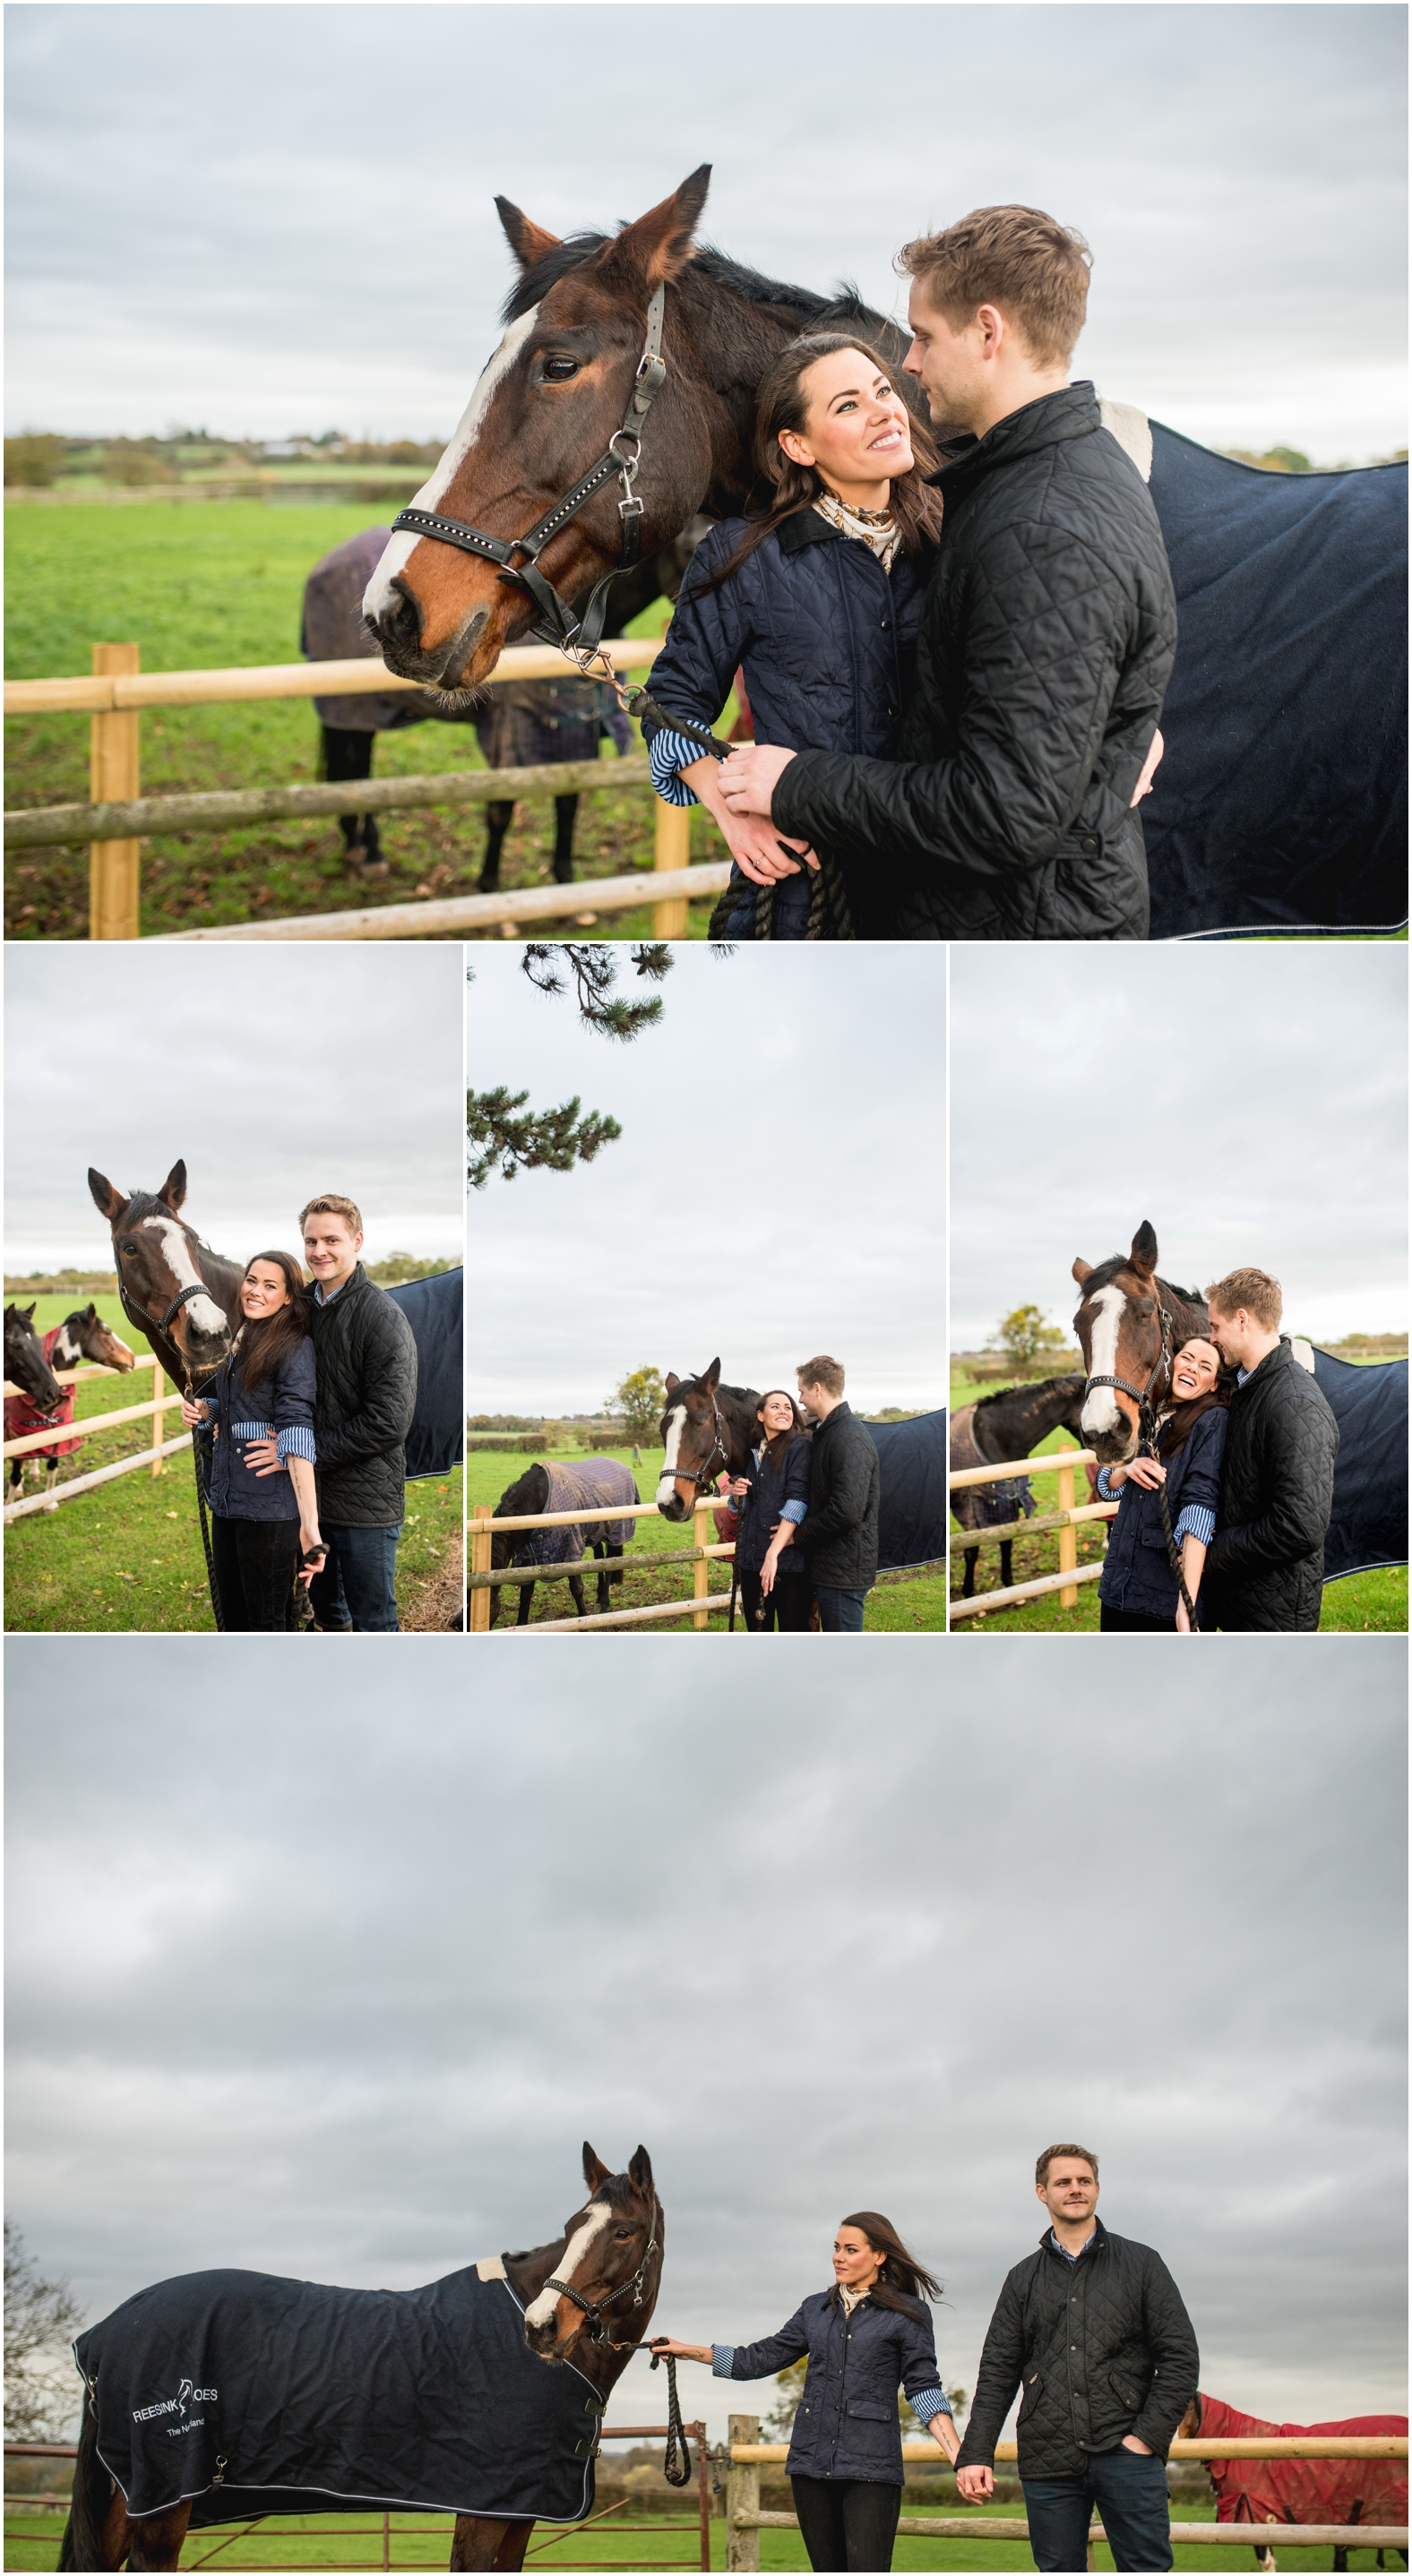 Sam and Lian's engagement shoot at the stables with horse Millie, wet and muddy with wellies by Lisa Carpenter Photography, West Midlands and Worcester based wedding photographer